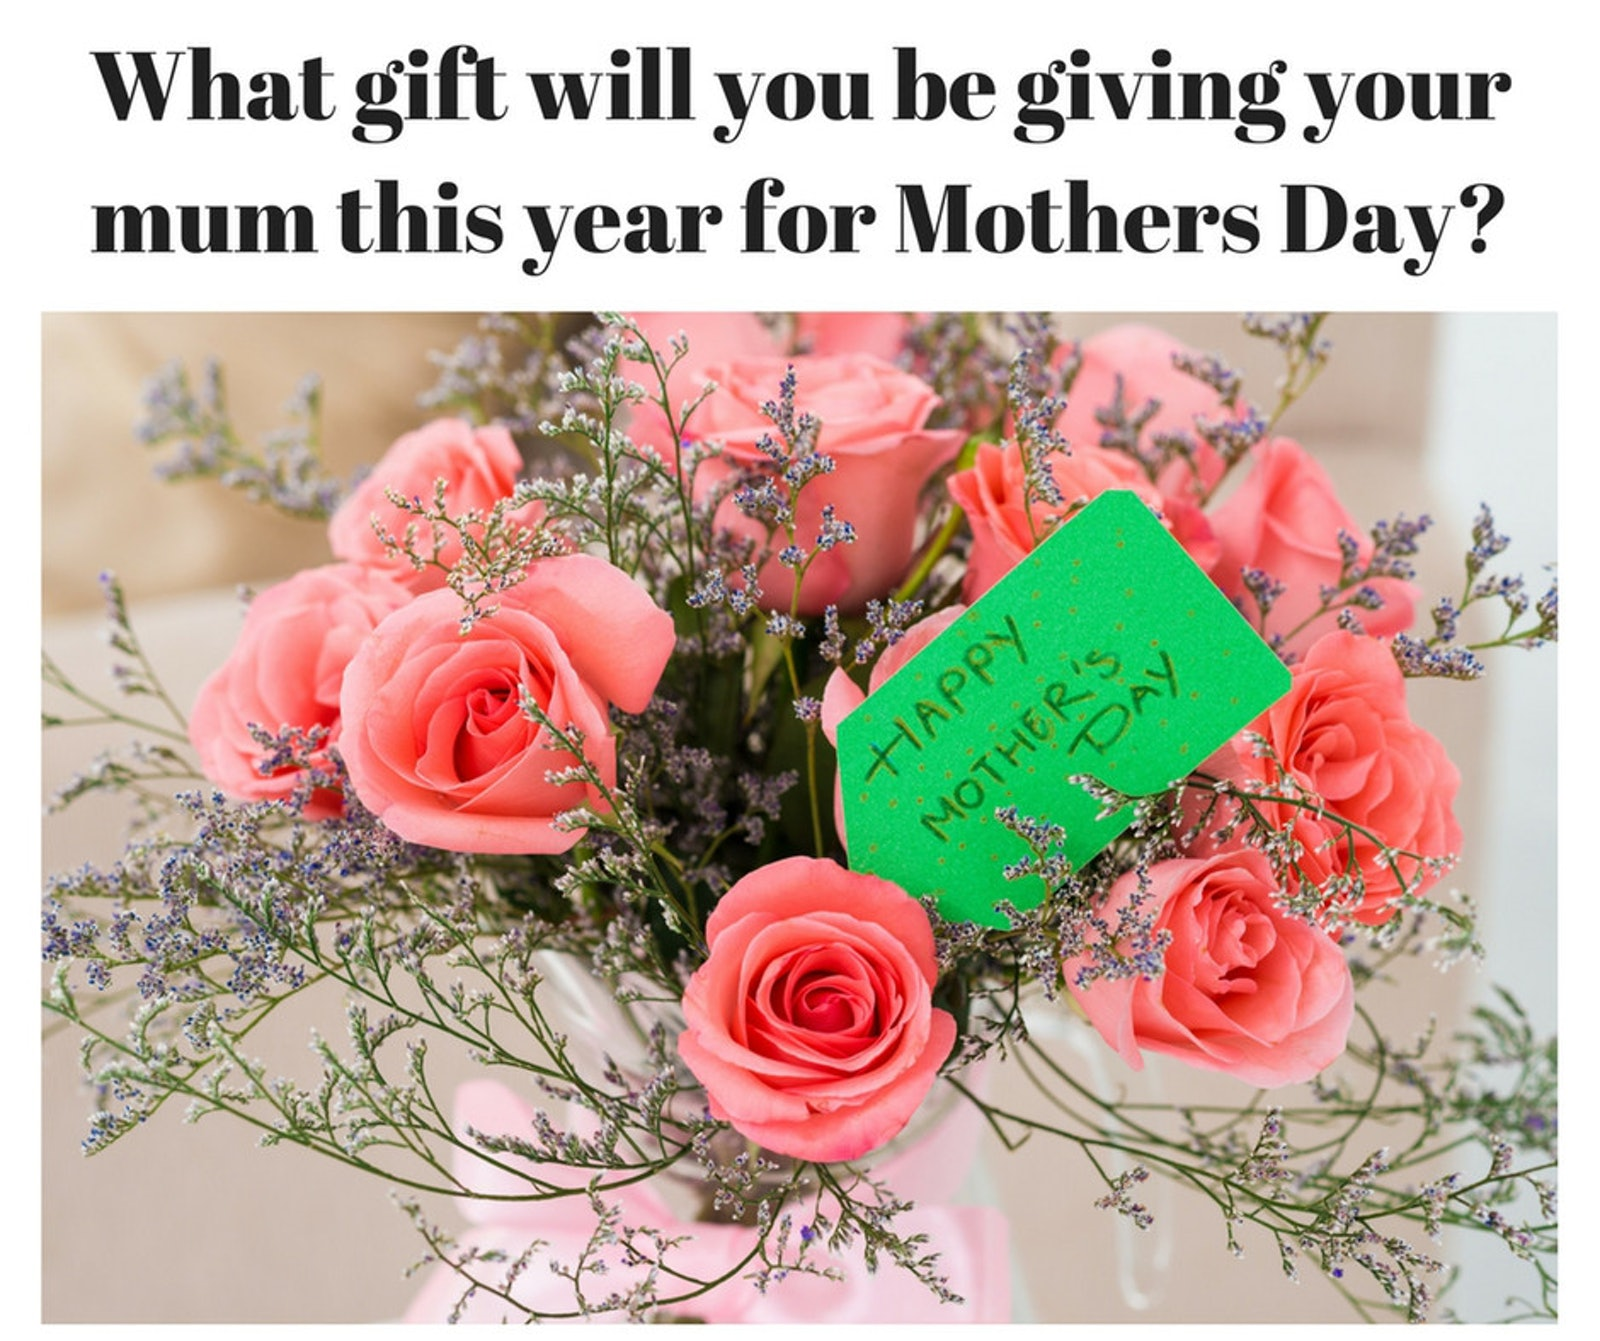 What gift will you be giving your mum this year for Mothers Day_